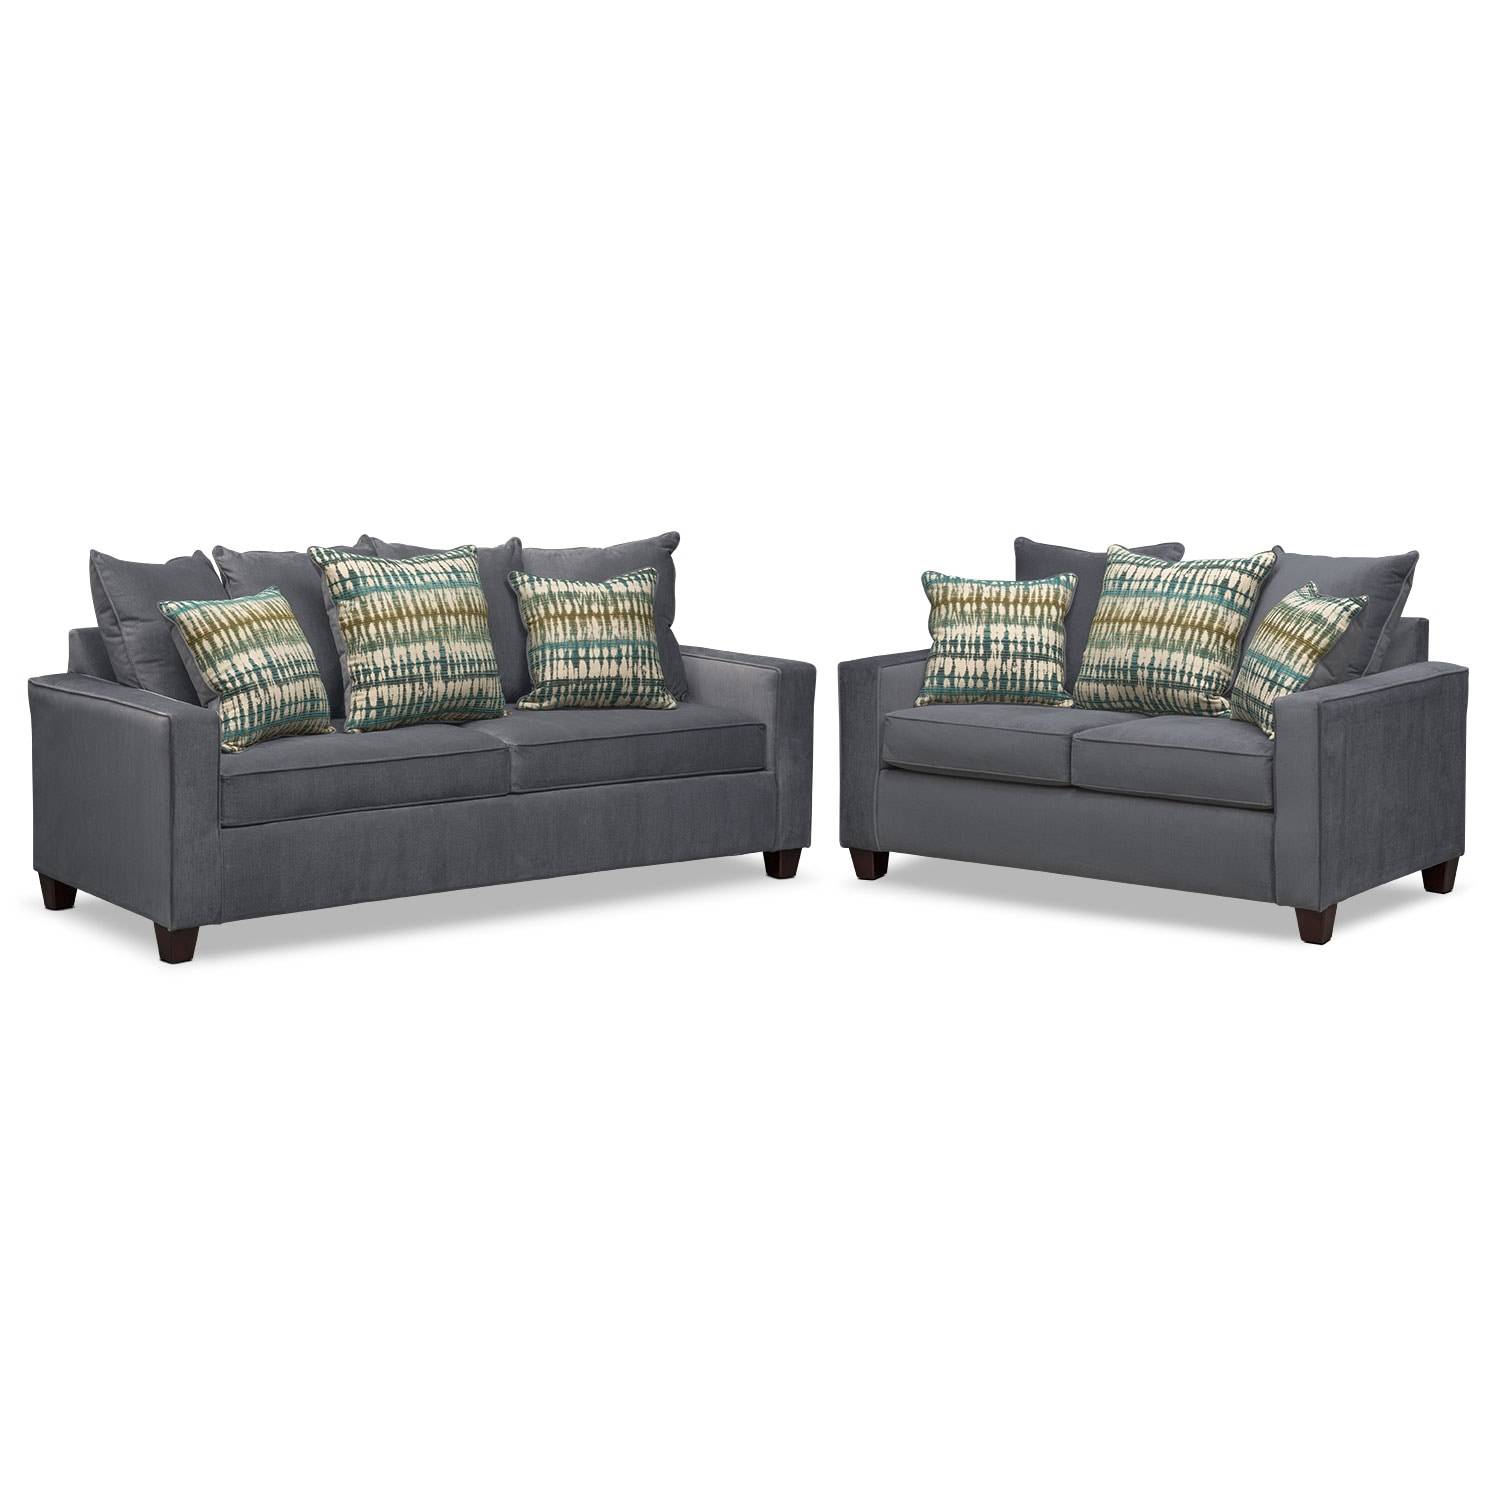 Living Room Furniture - Bryden Sofa and Loveseat Set - Slate